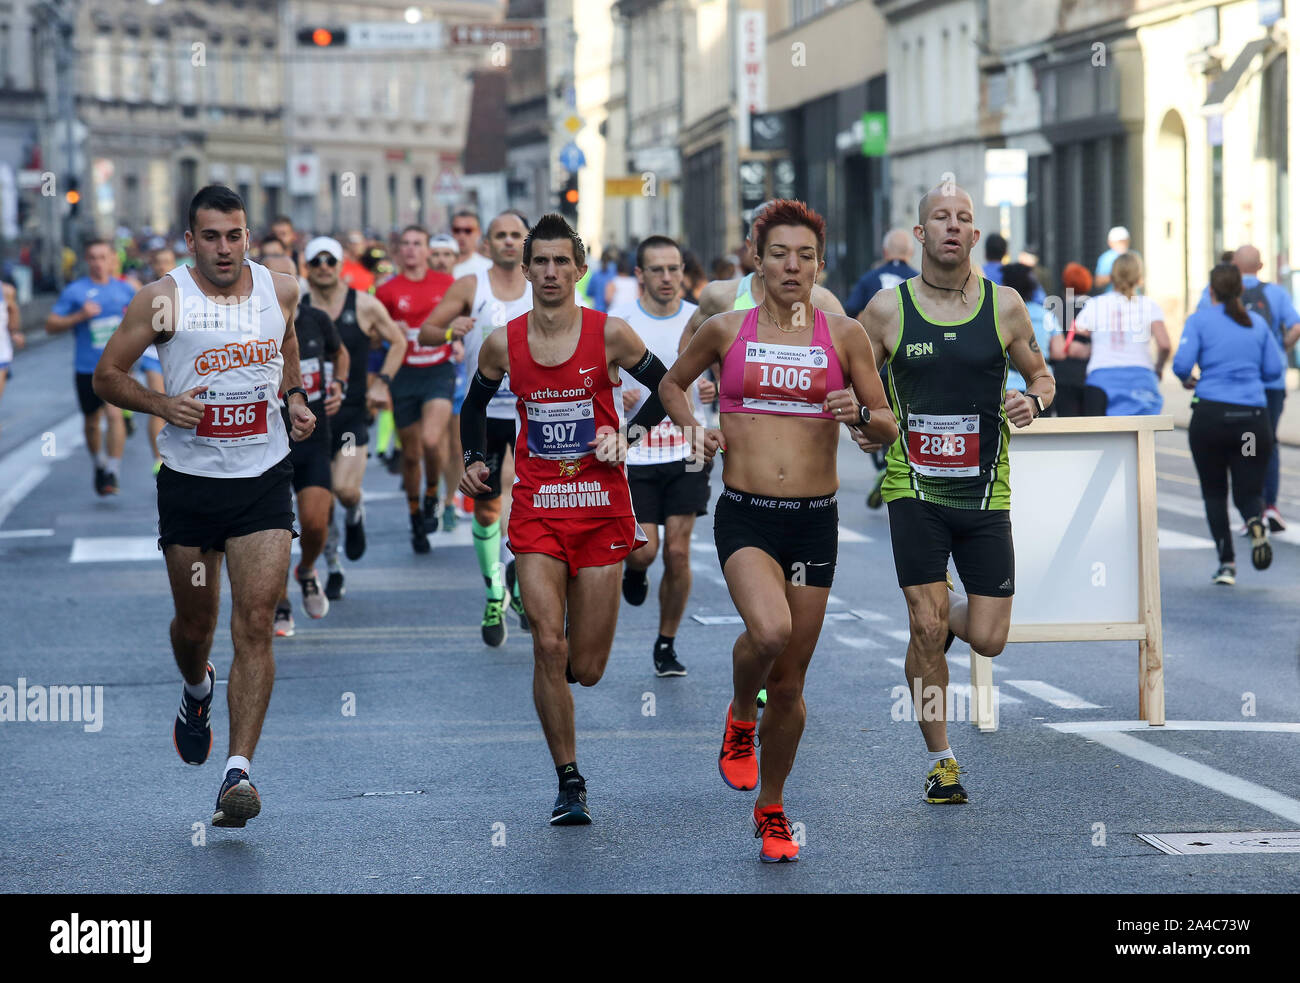 Zagreb Marathon High Resolution Stock Photography And Images Alamy